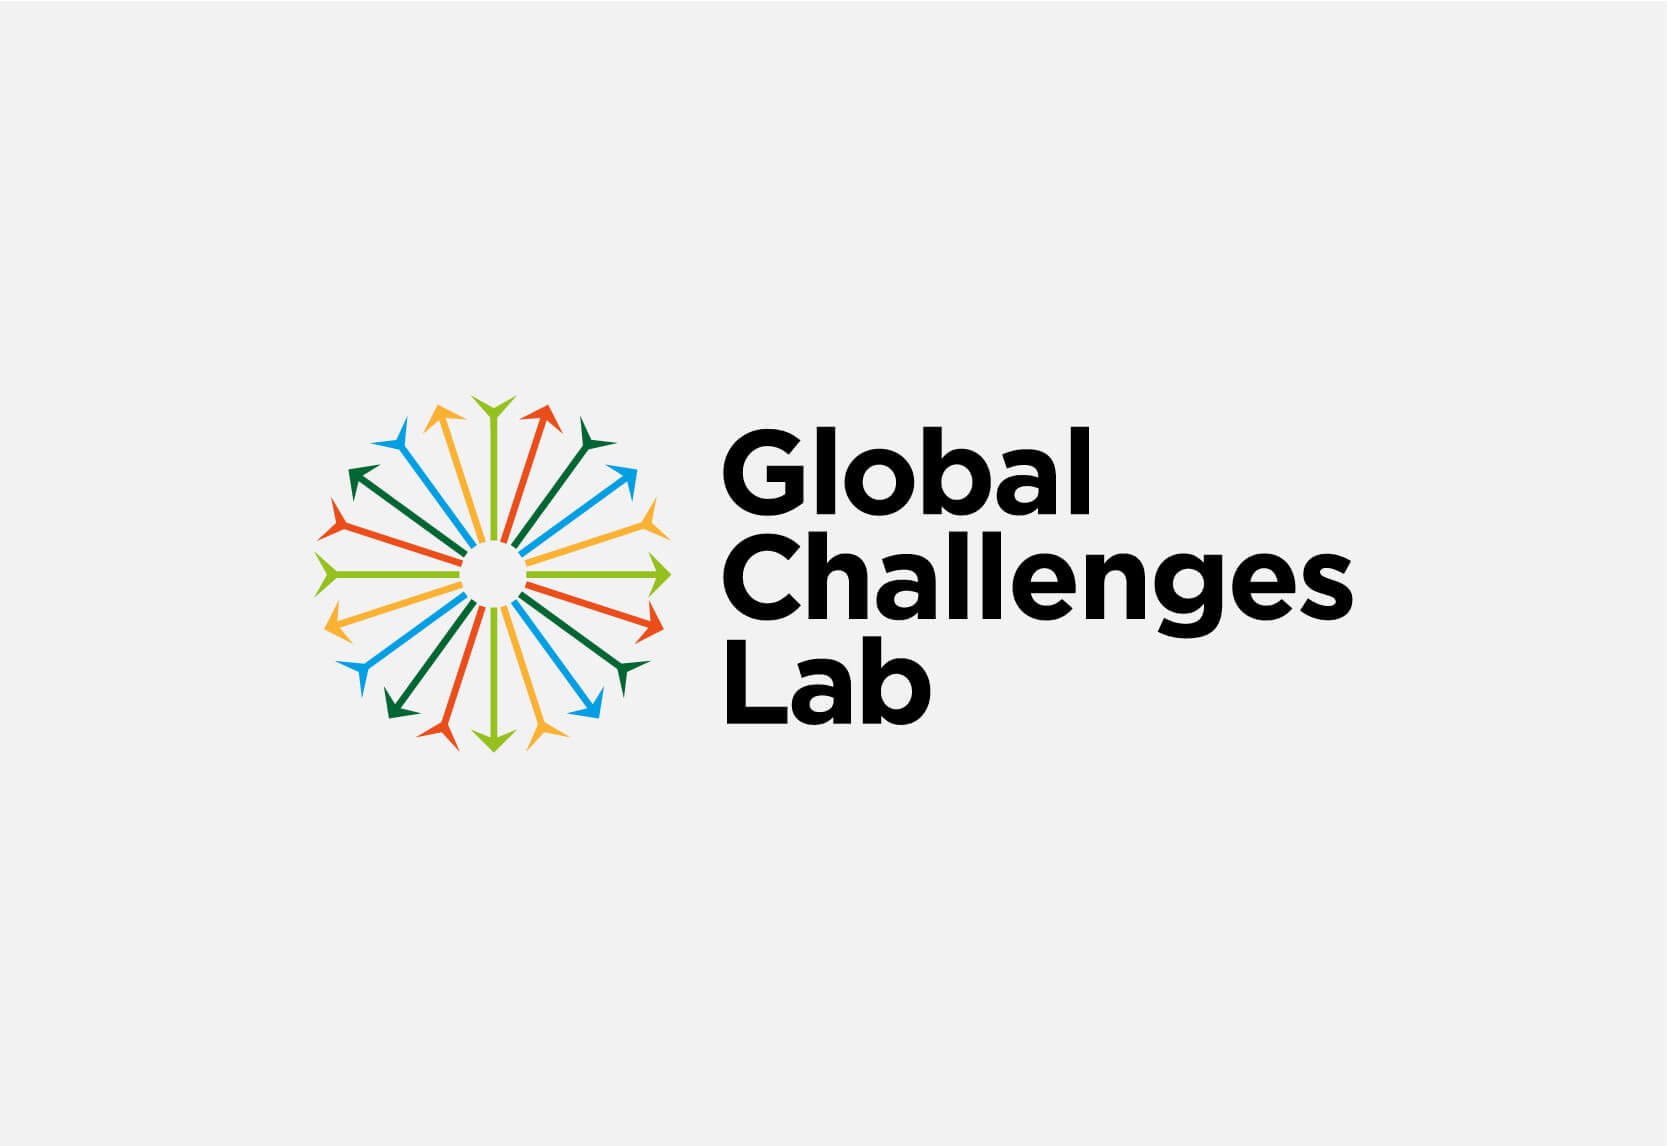 Global Challenges Lab logo